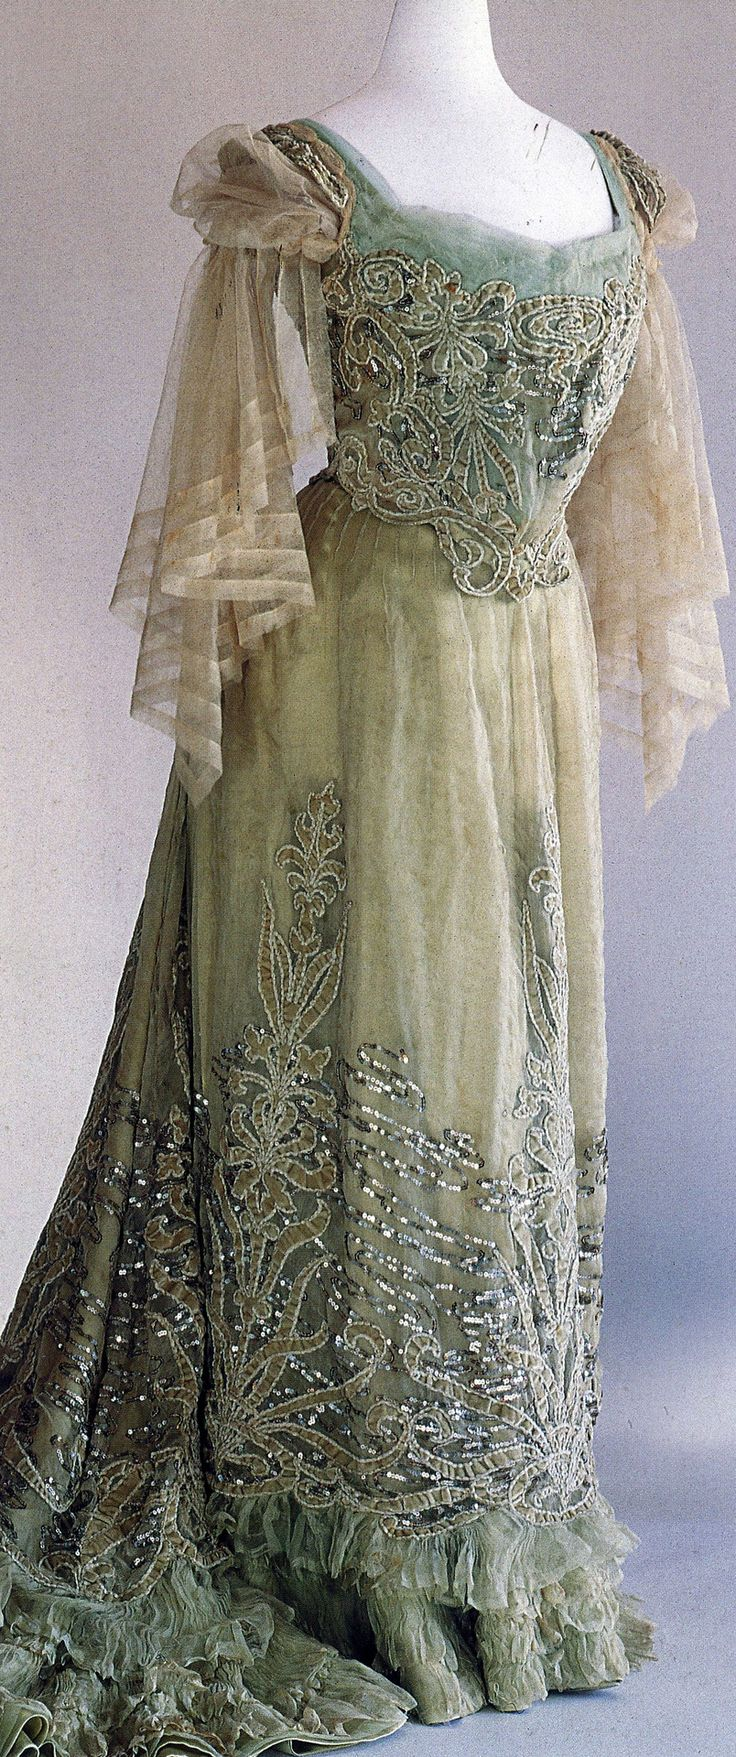 charles frederick worth | Tumblr ~ Beautiful Unique Ball Gowns, couture, wedding, bridal, bride, dress, fantasy, flowers, flower, floral, flora, fairytale, fashion, designer, beautiful, stunning, prom dress, ball gown, Cinderella, Princess, satin, lace, velvet, bodice, vintage, Marie Antoinette, fashion, dress, dresses, elegant, sweetheart, corset,